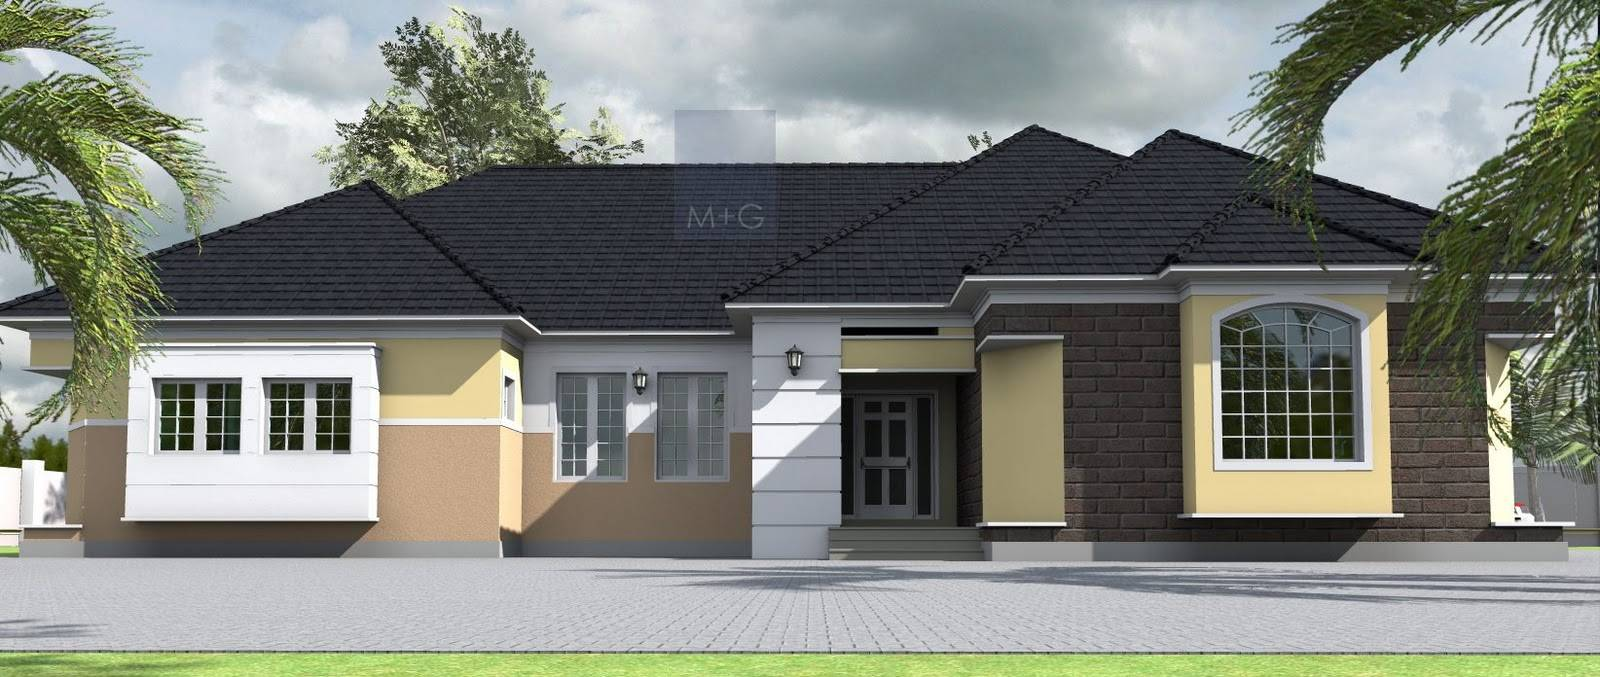 Contemporary Nigerian Residential Architecture Bedroom House Plans 166016